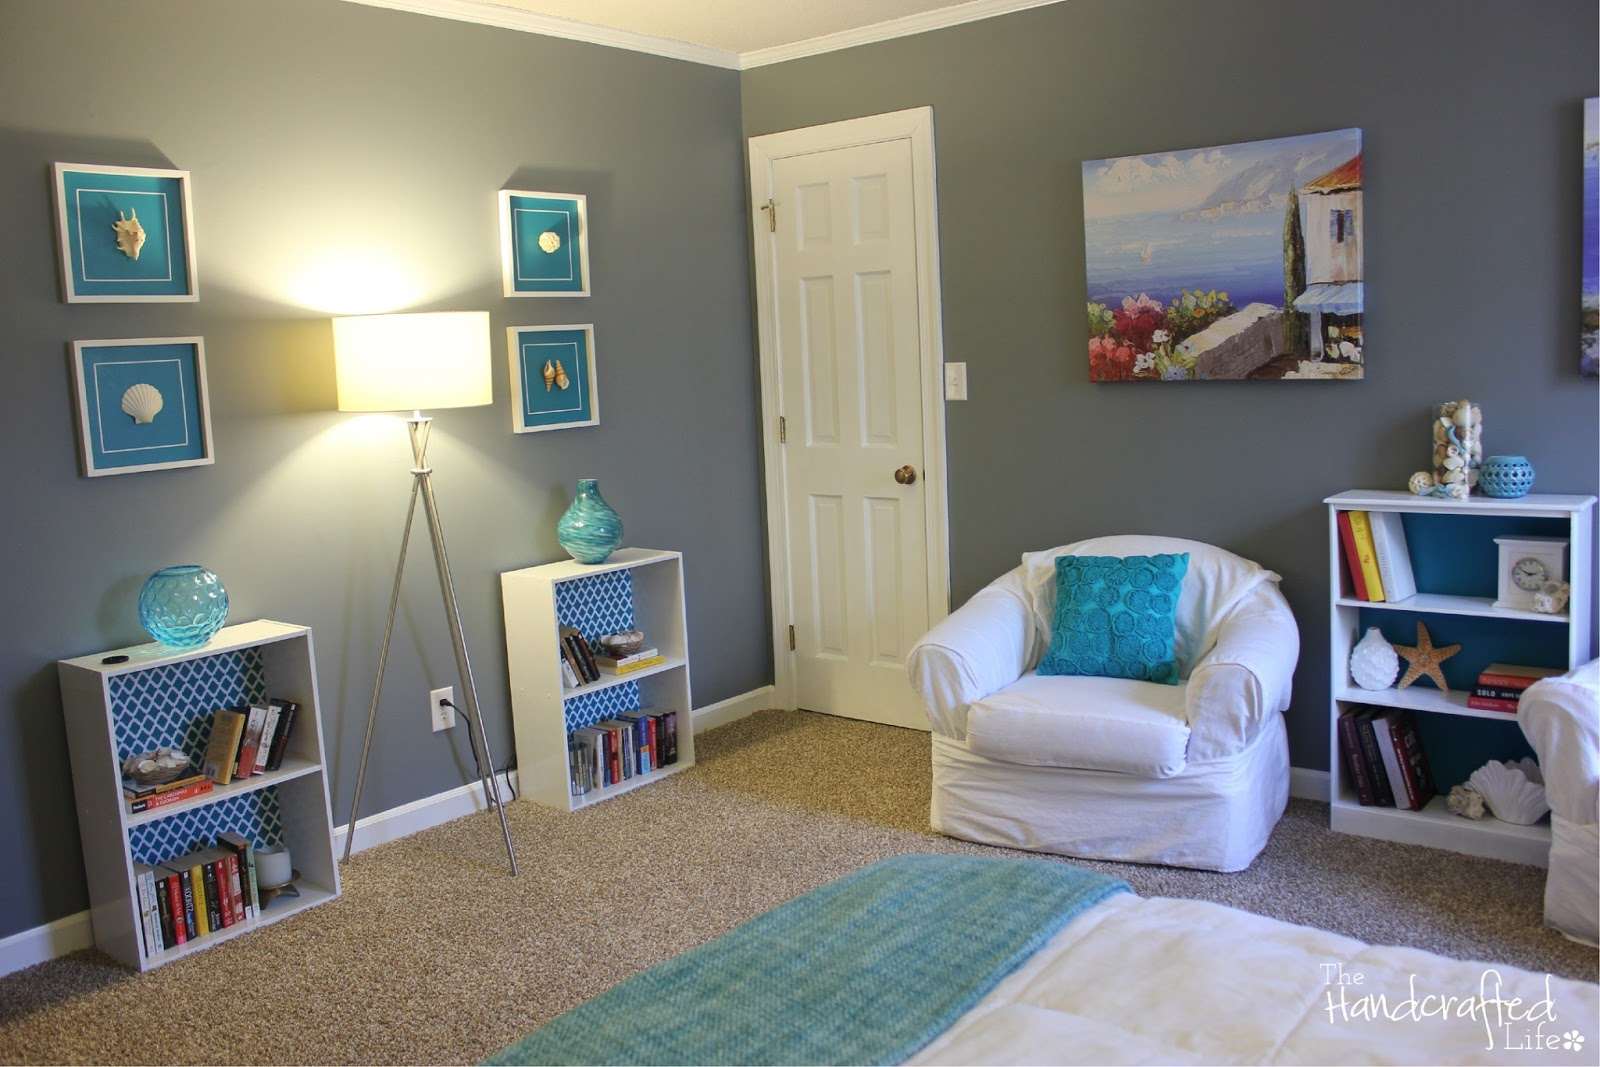 The handcrafted life teal white and grey guest bedroom for Bedroom ideas teal